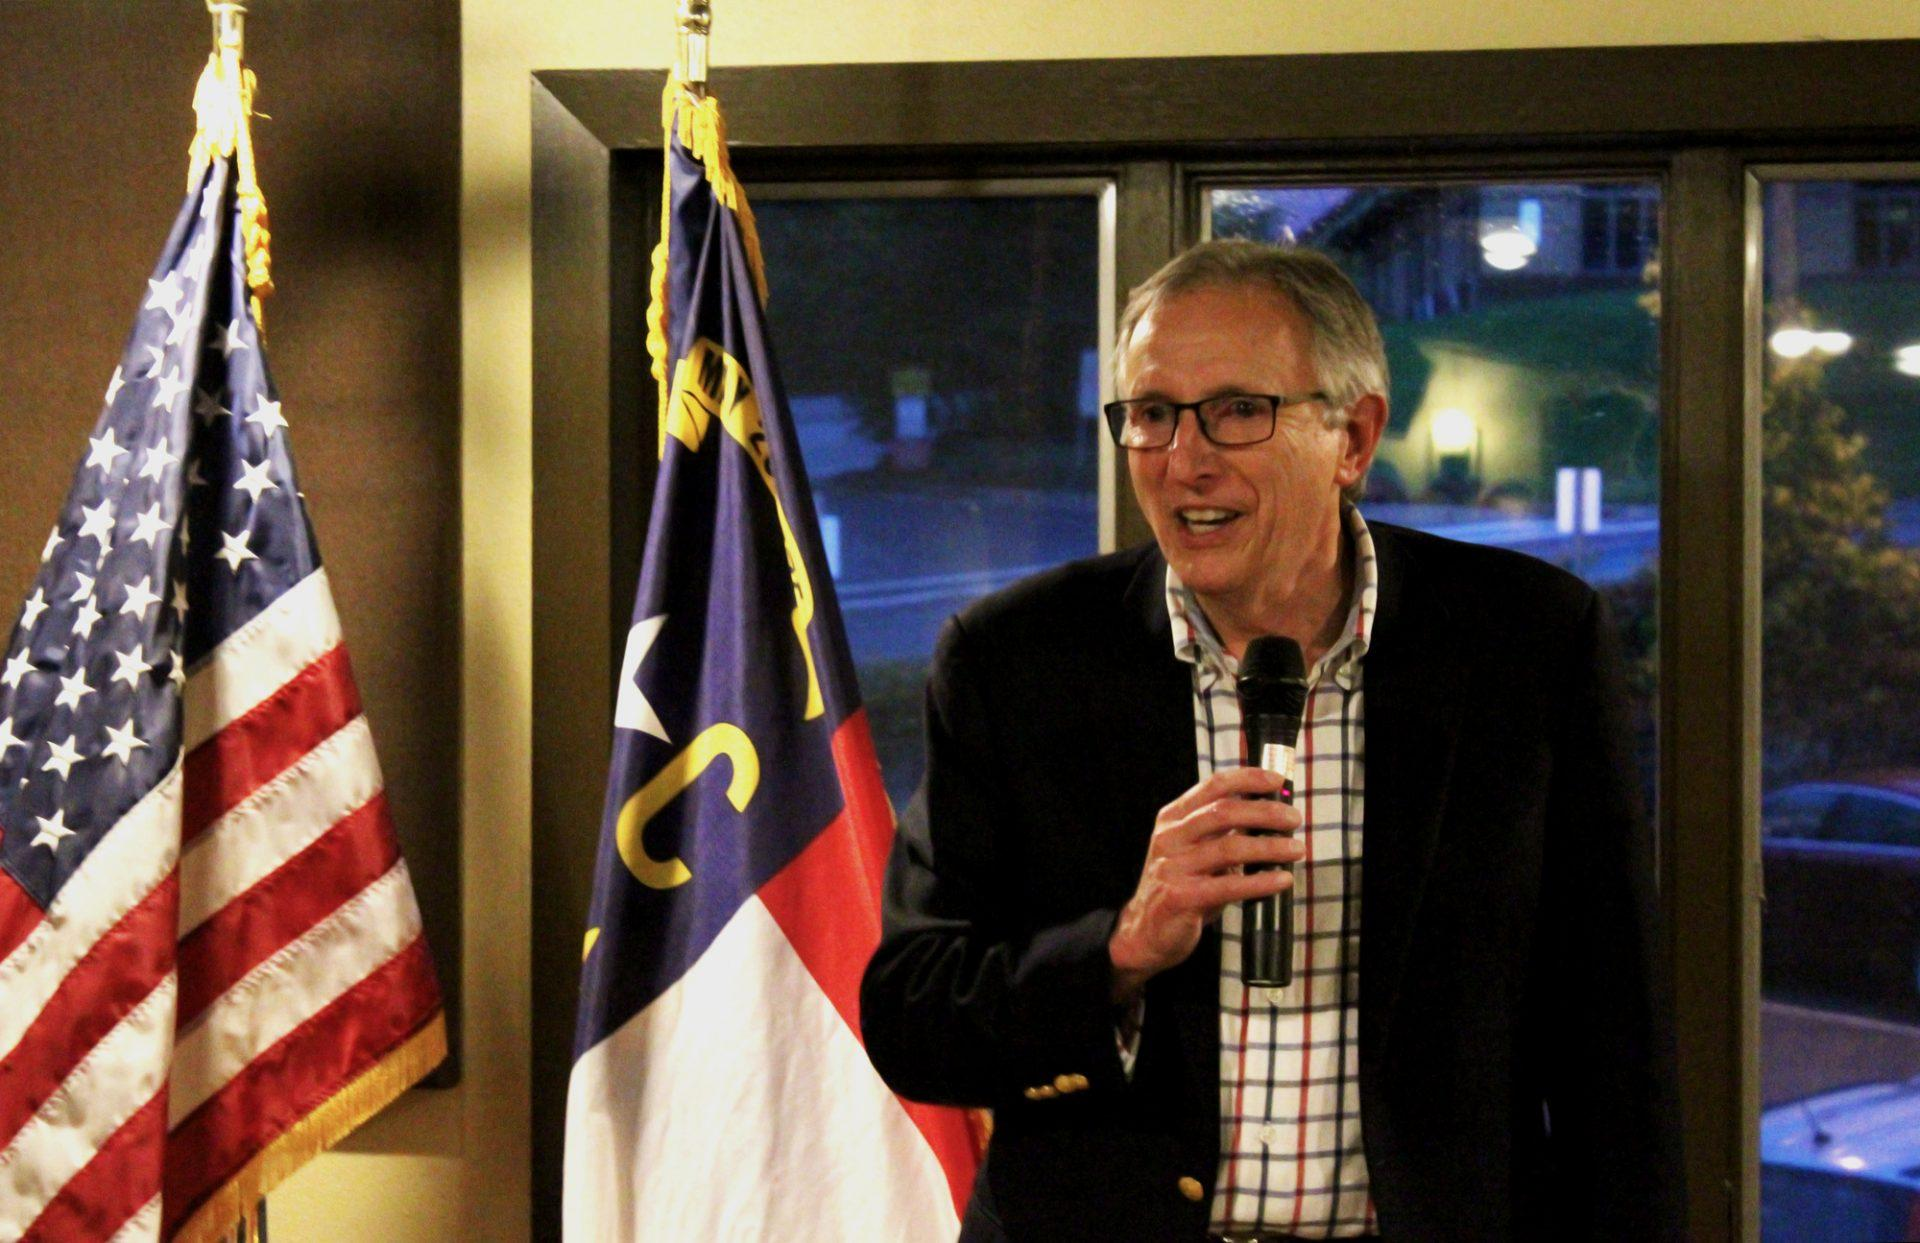 Ray+Russell+speaking+to+a+small+audience+of+supporters.+Russell+annouced+his+candidacy+for+the+93rd+district+of+the+NC+House+on+Tuesday+at+Lost+Province.